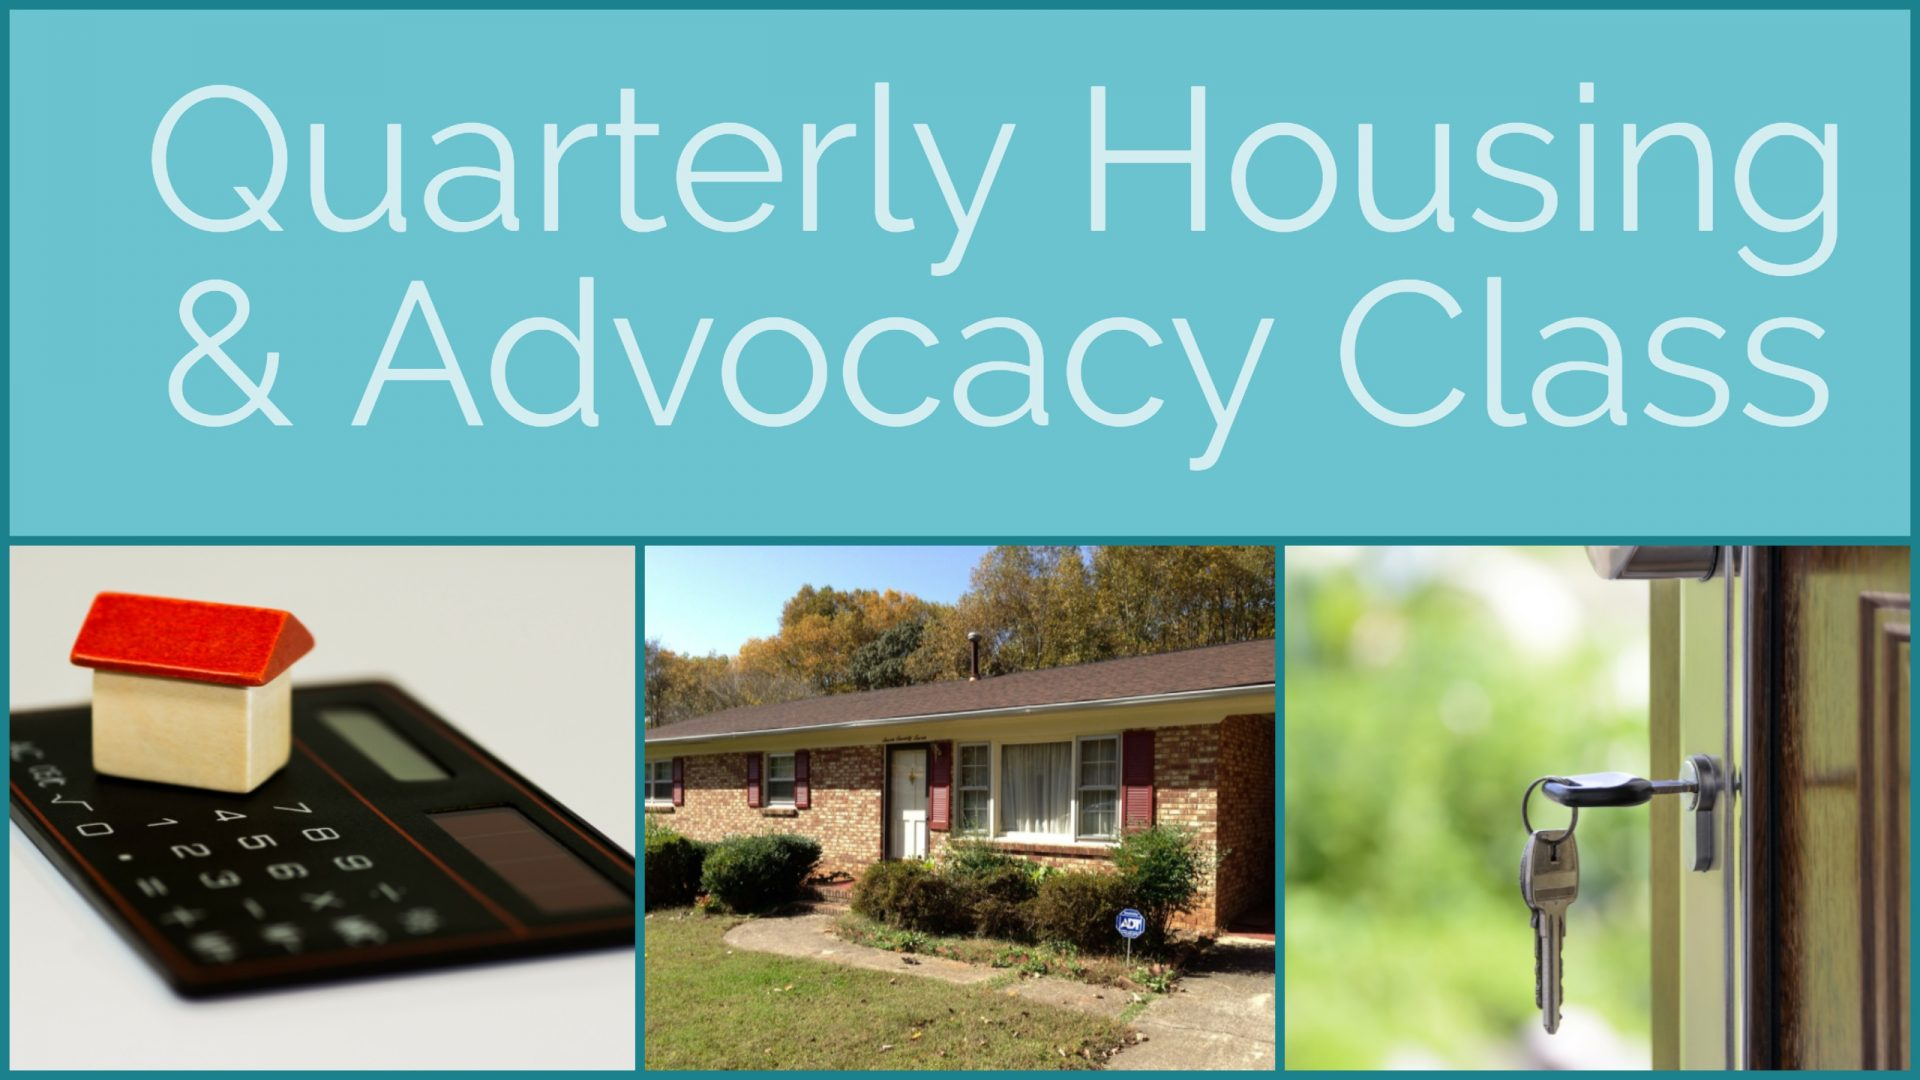 Header image: light blue text box with text reading: Quarterly Housing & Advocacy Class. Below the text box are three images in a row. The far left image is a slim black, calculator sitting on a white desk with a white and red toy house sitting on top of it. The middle image is a snapshot of the front door and walkway of a brick home. The far right image is the close up photo of a set of keys handing from a door knob on an open door.